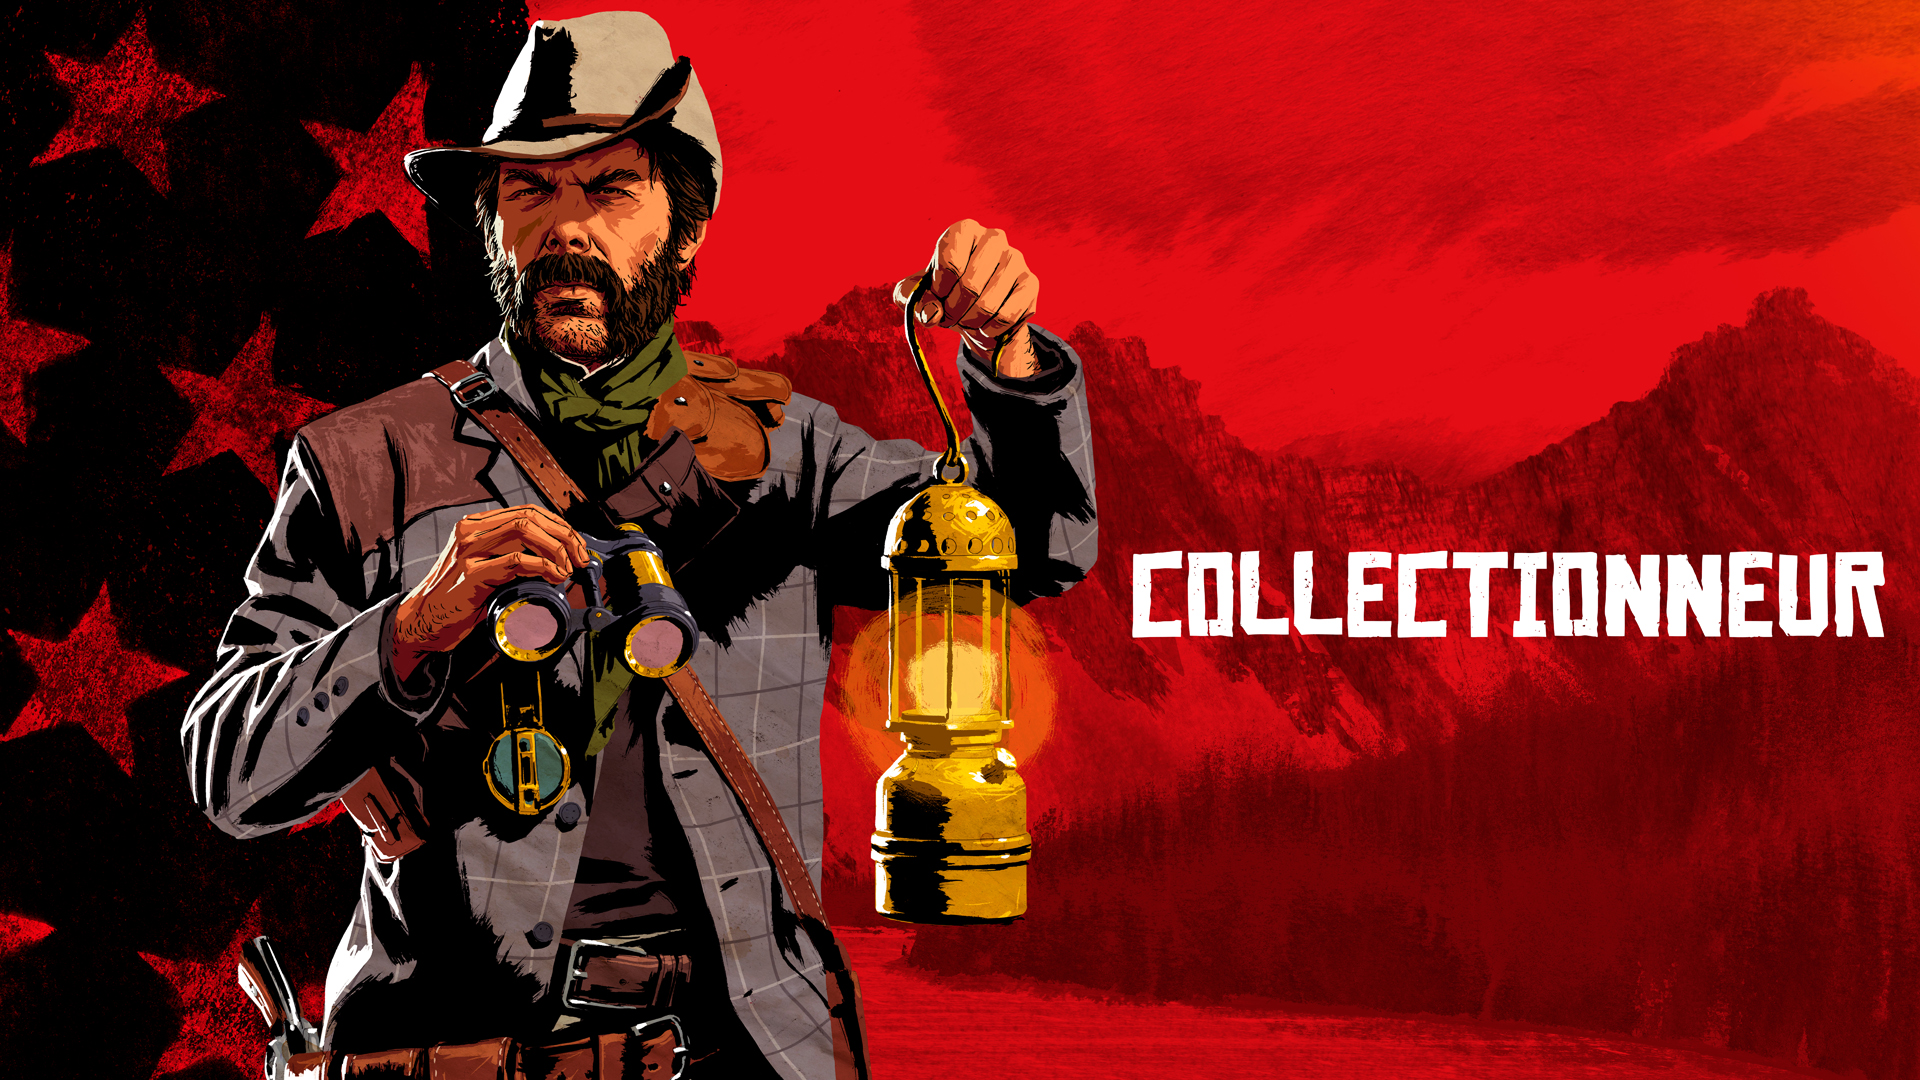 red-dead-online-artwork-23-fr-hd.jpg